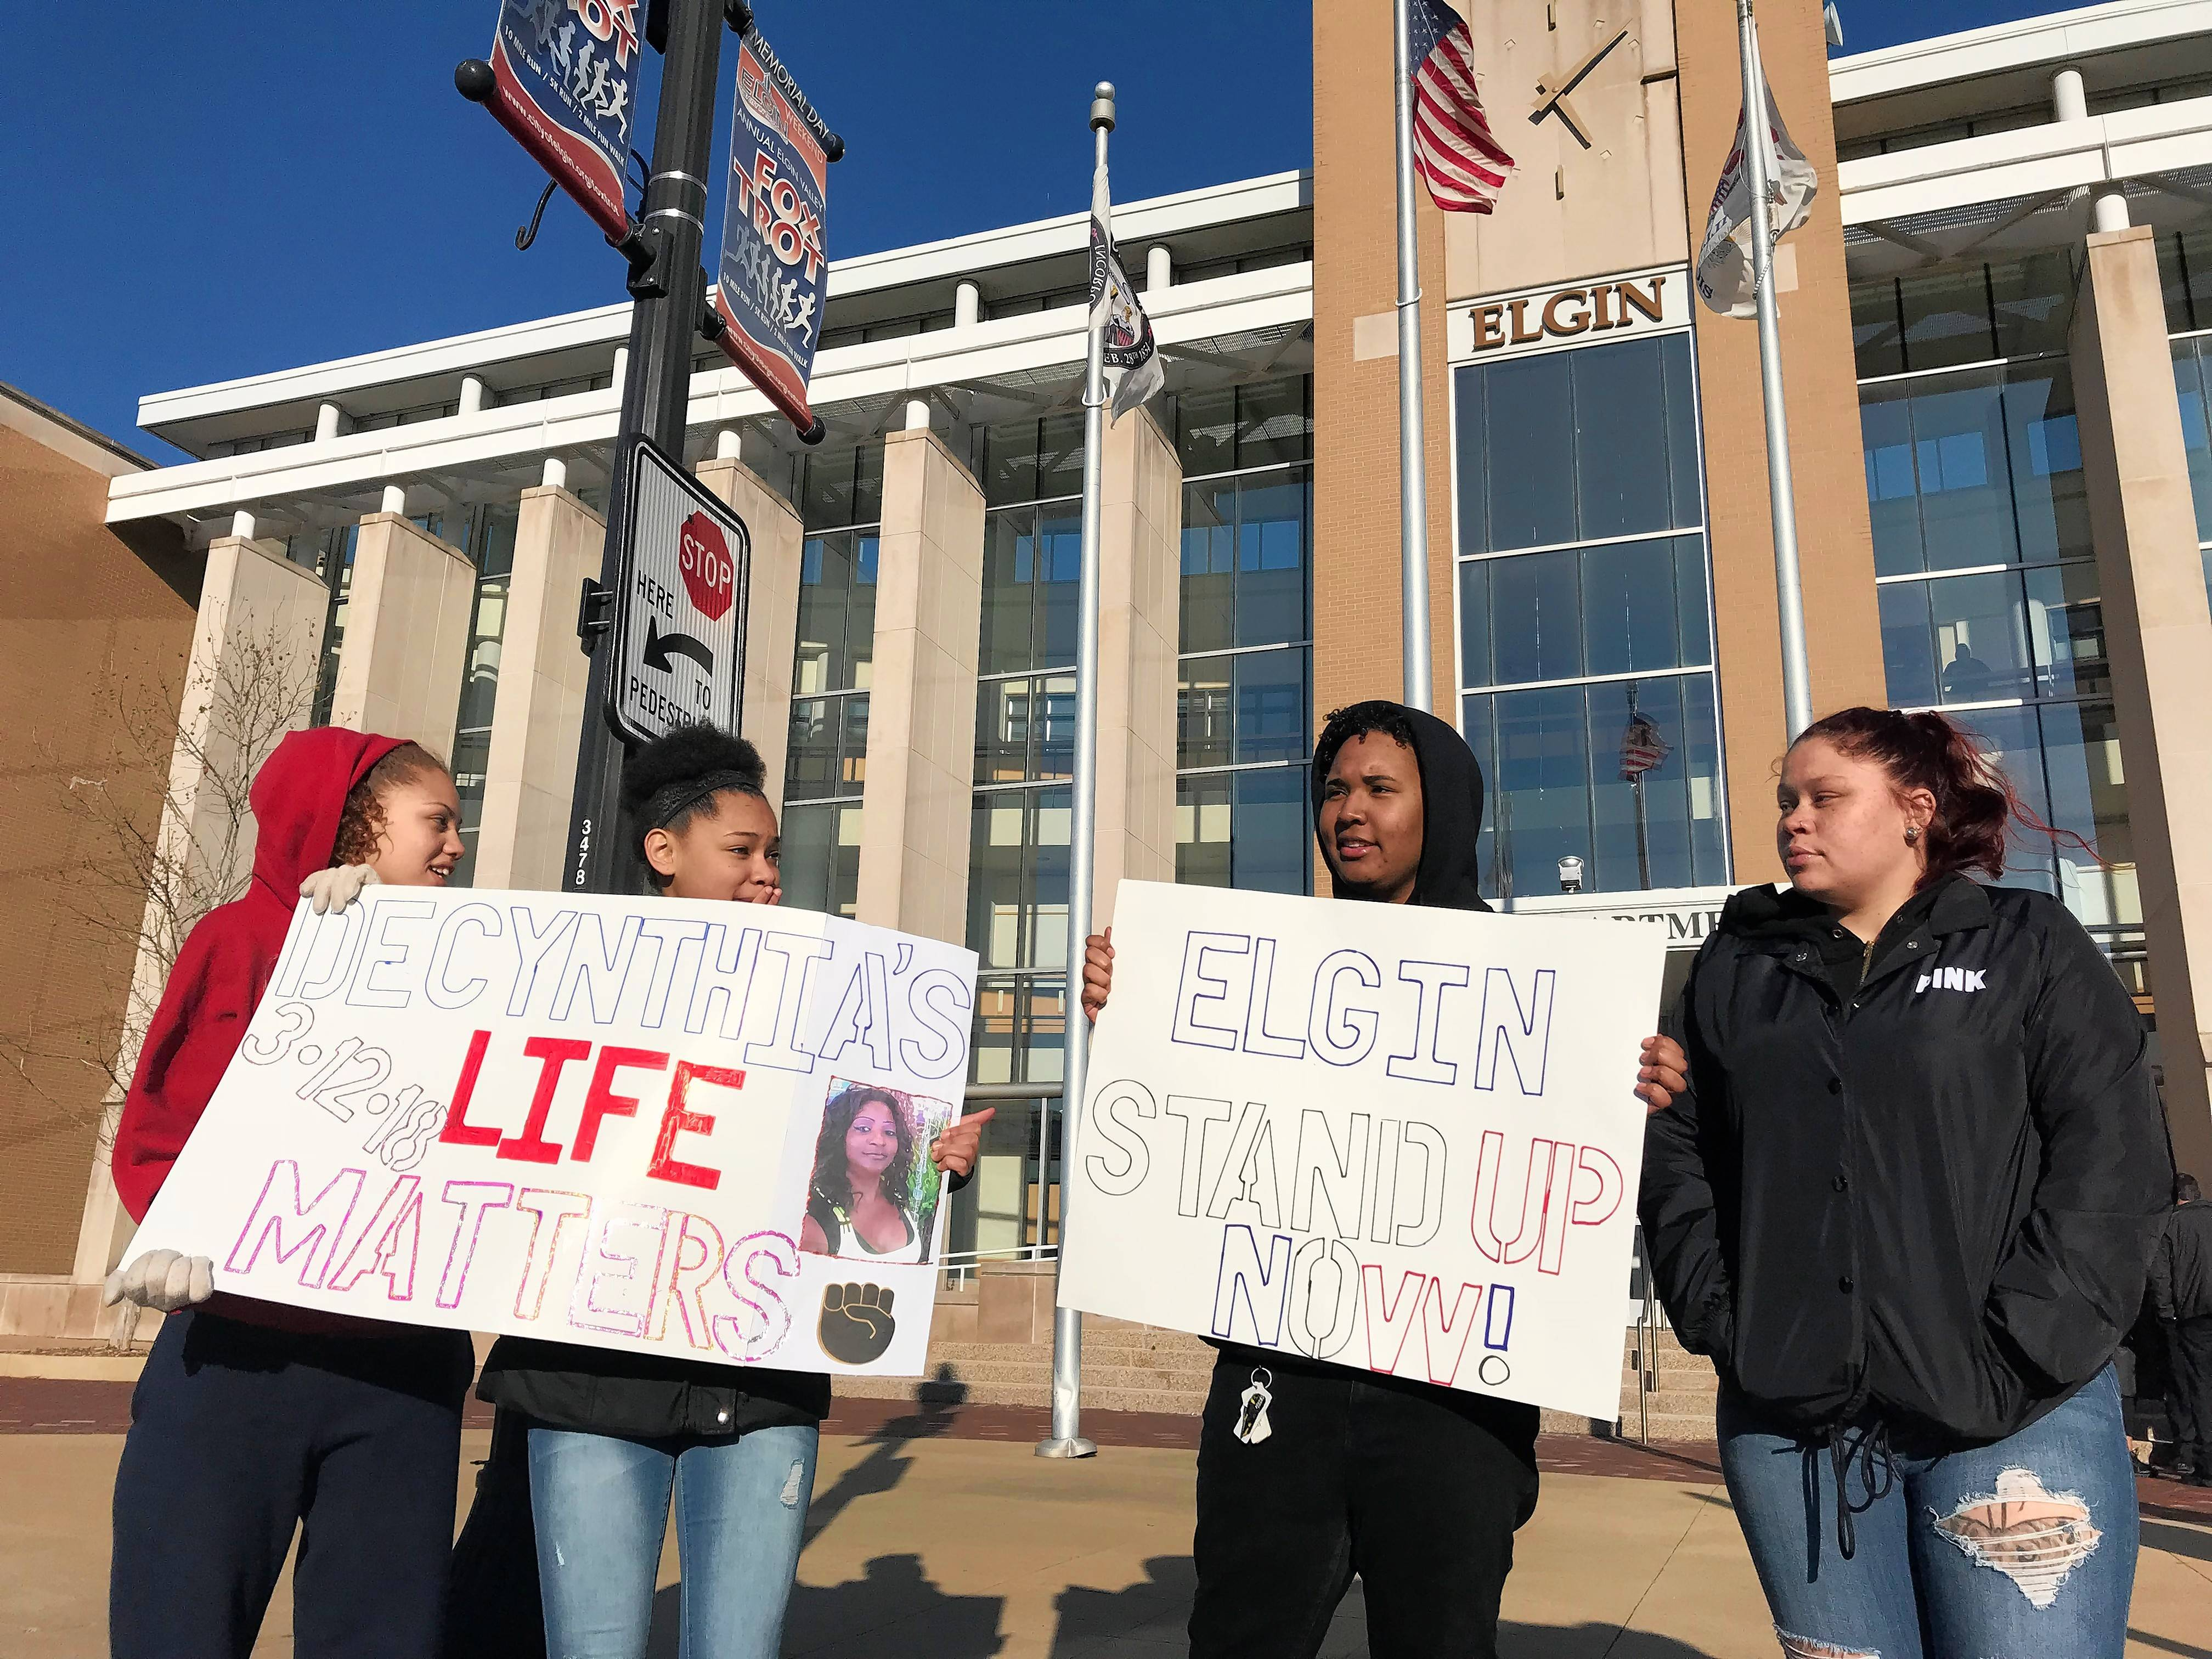 South Elgin High School students Amarrah Banner, far left, and Nadya Quezada, second from right, joined a second day of protests in Elgin demanding the release of police body camera video in the fatal shooting of Decynthia Clements.